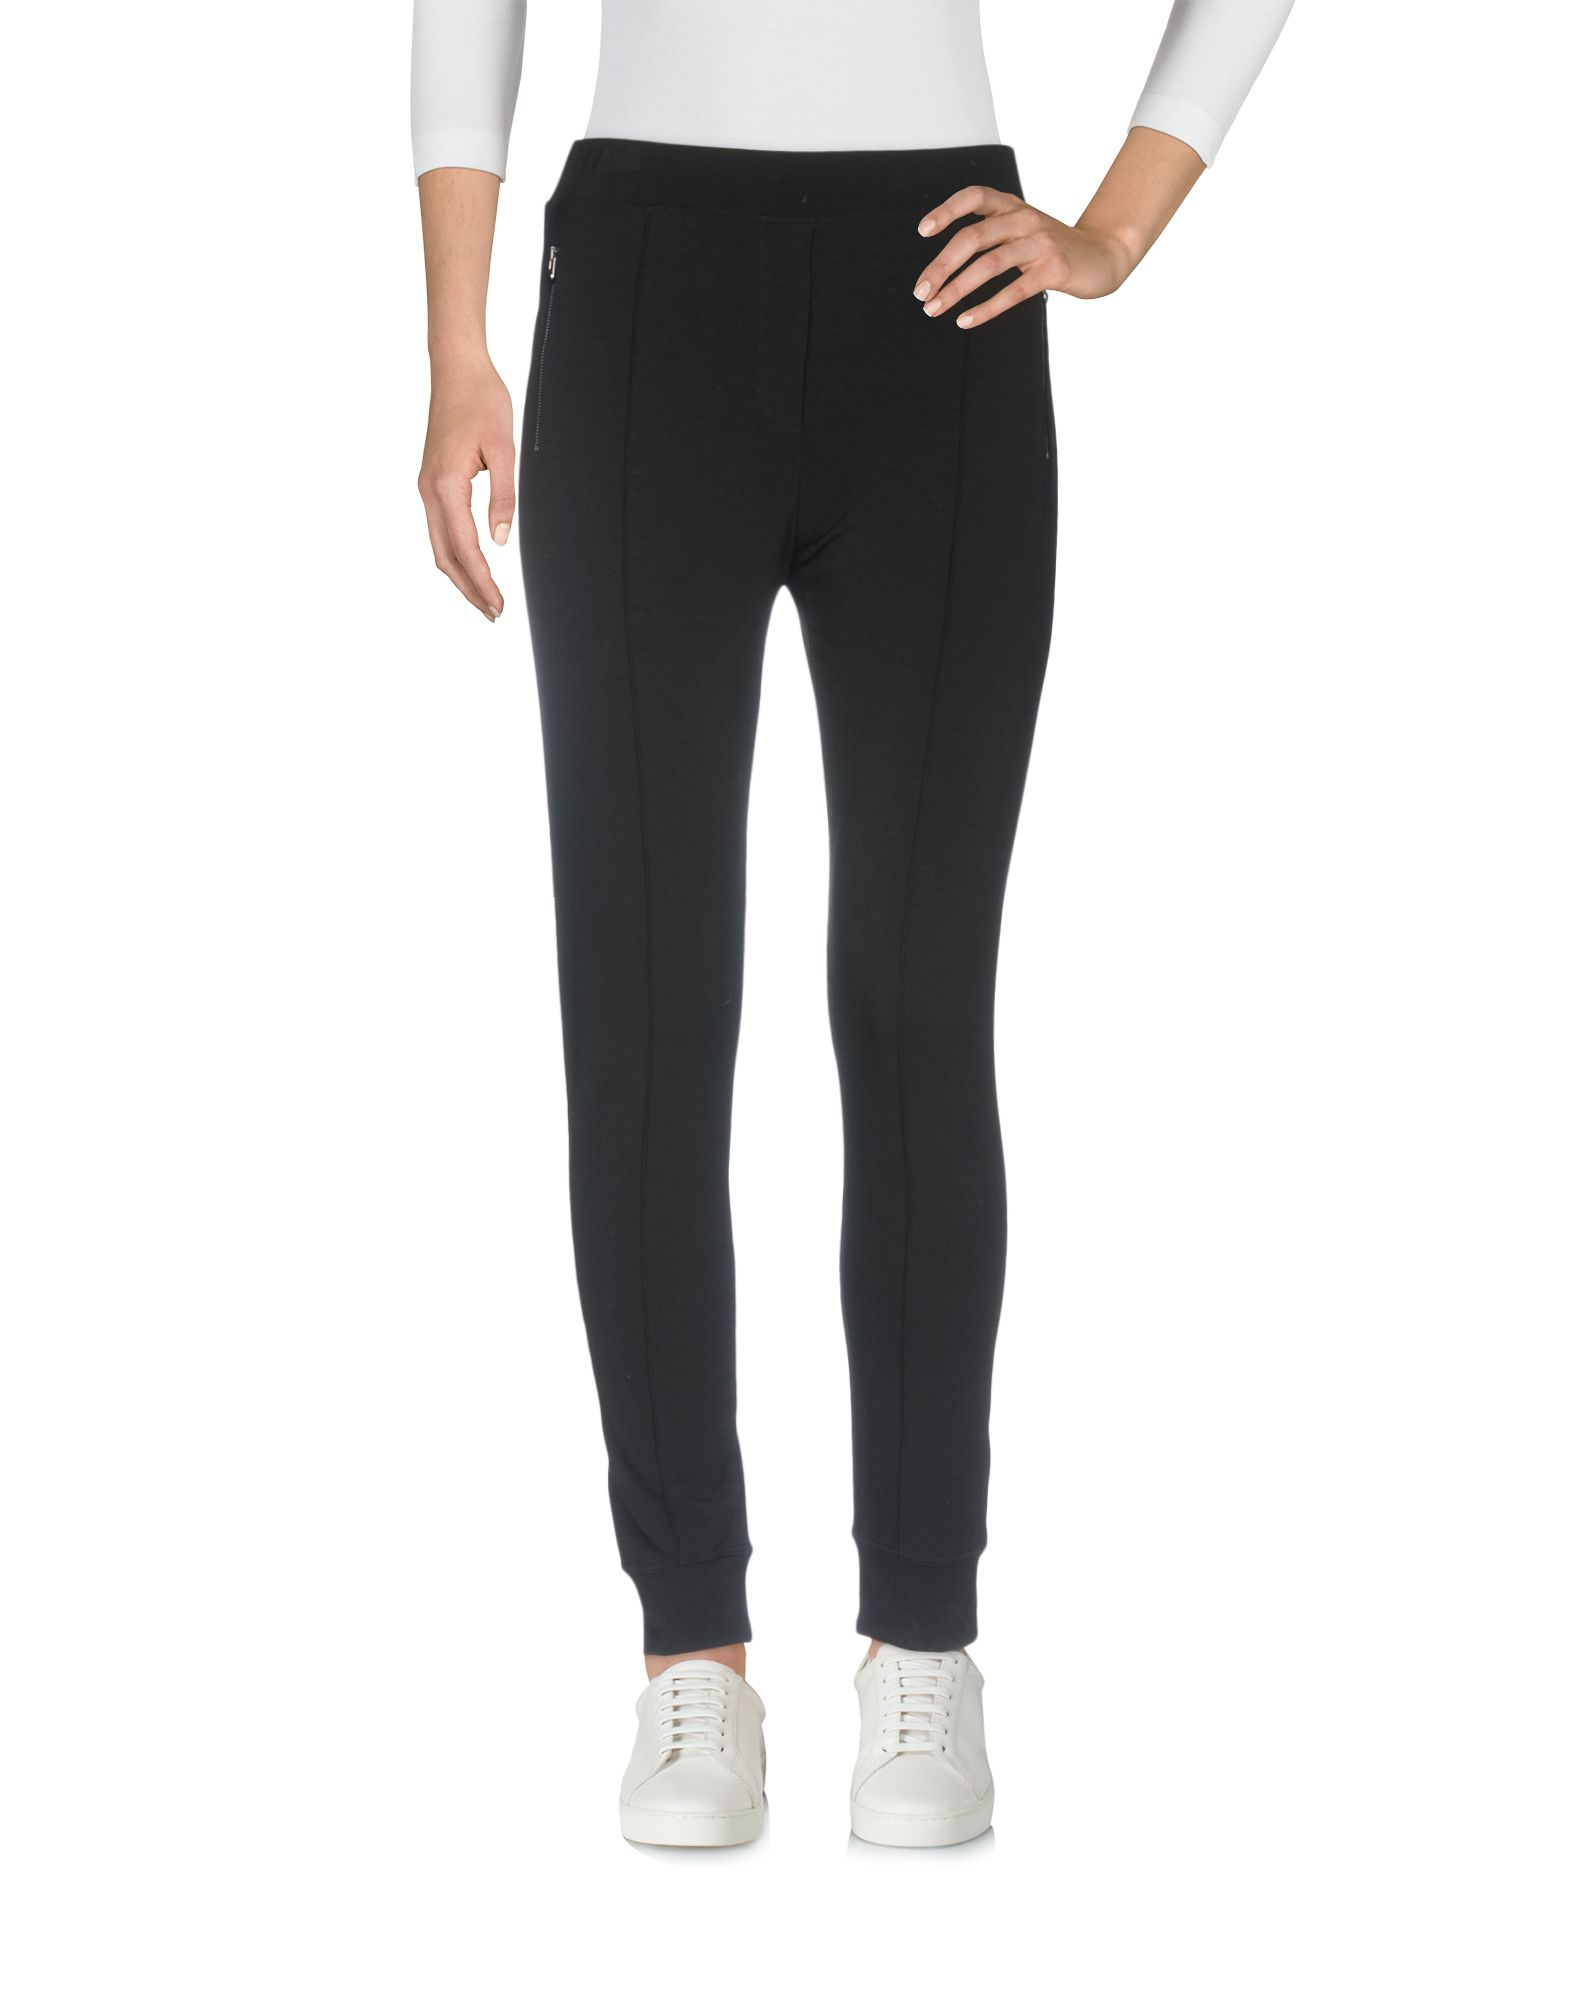 Pantalone Vdp Club Donna - Acquista online su OH6LeNg